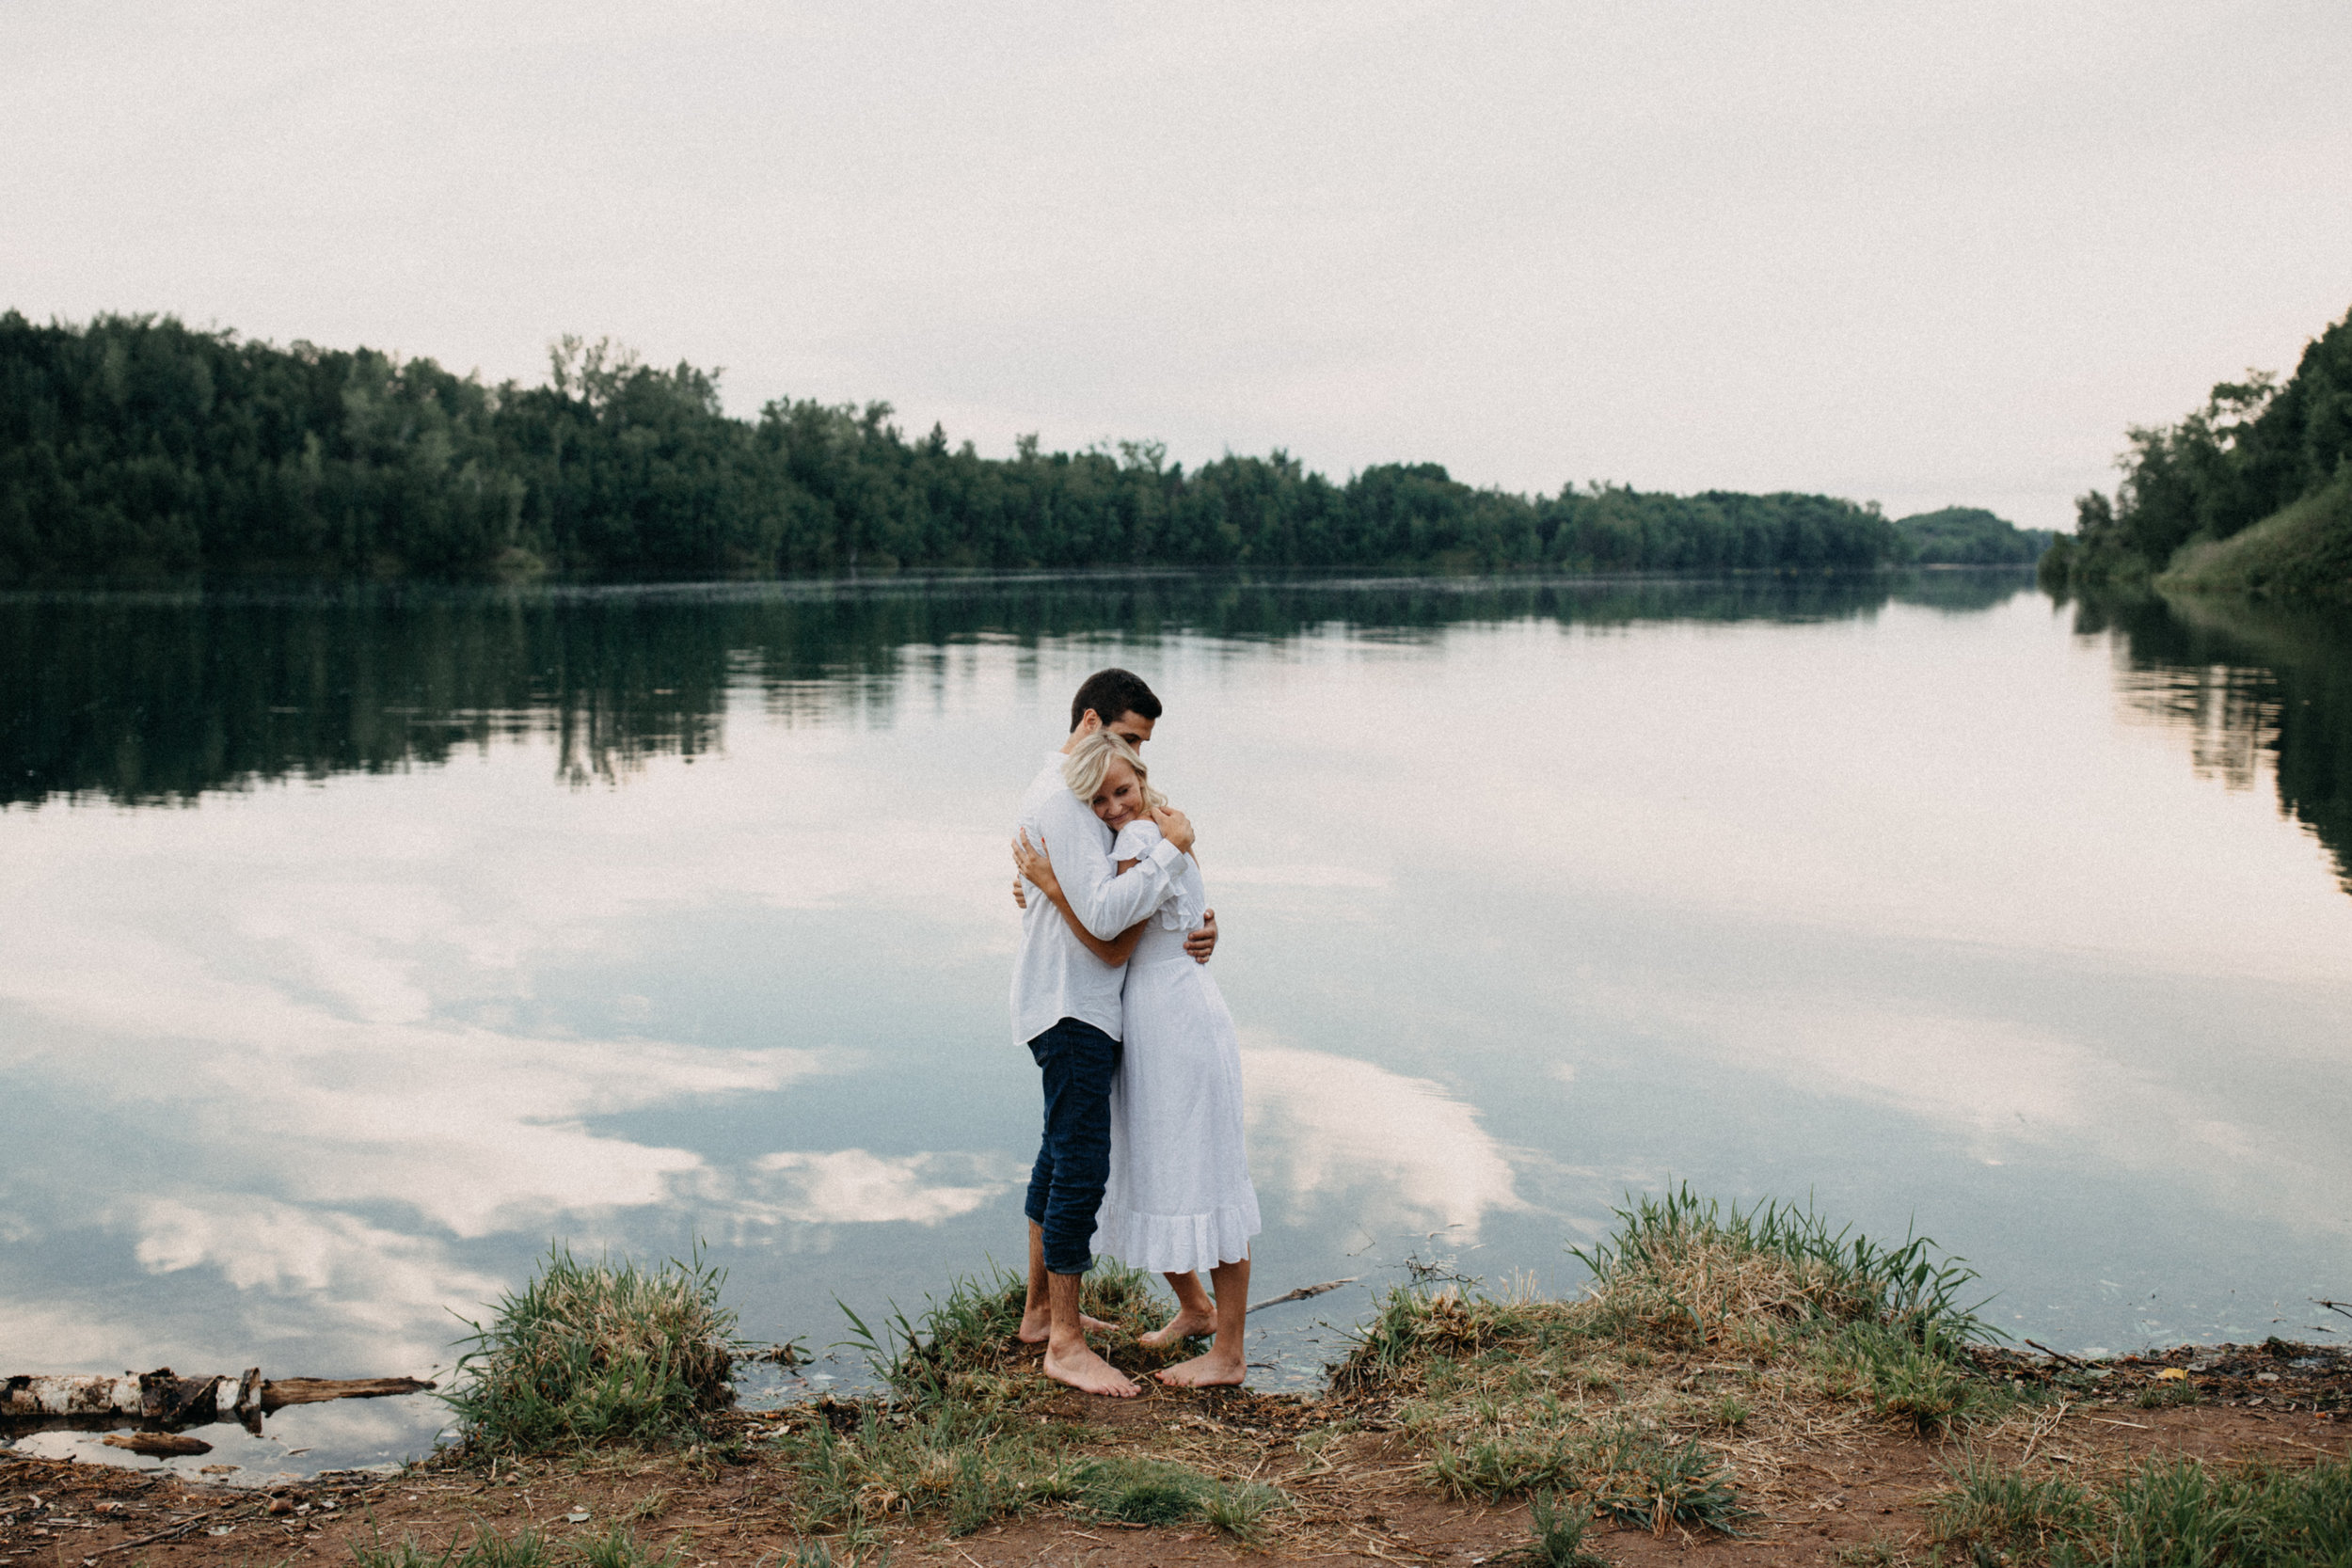 Summer engagement session at the Cuyuna Country State Recreation Area